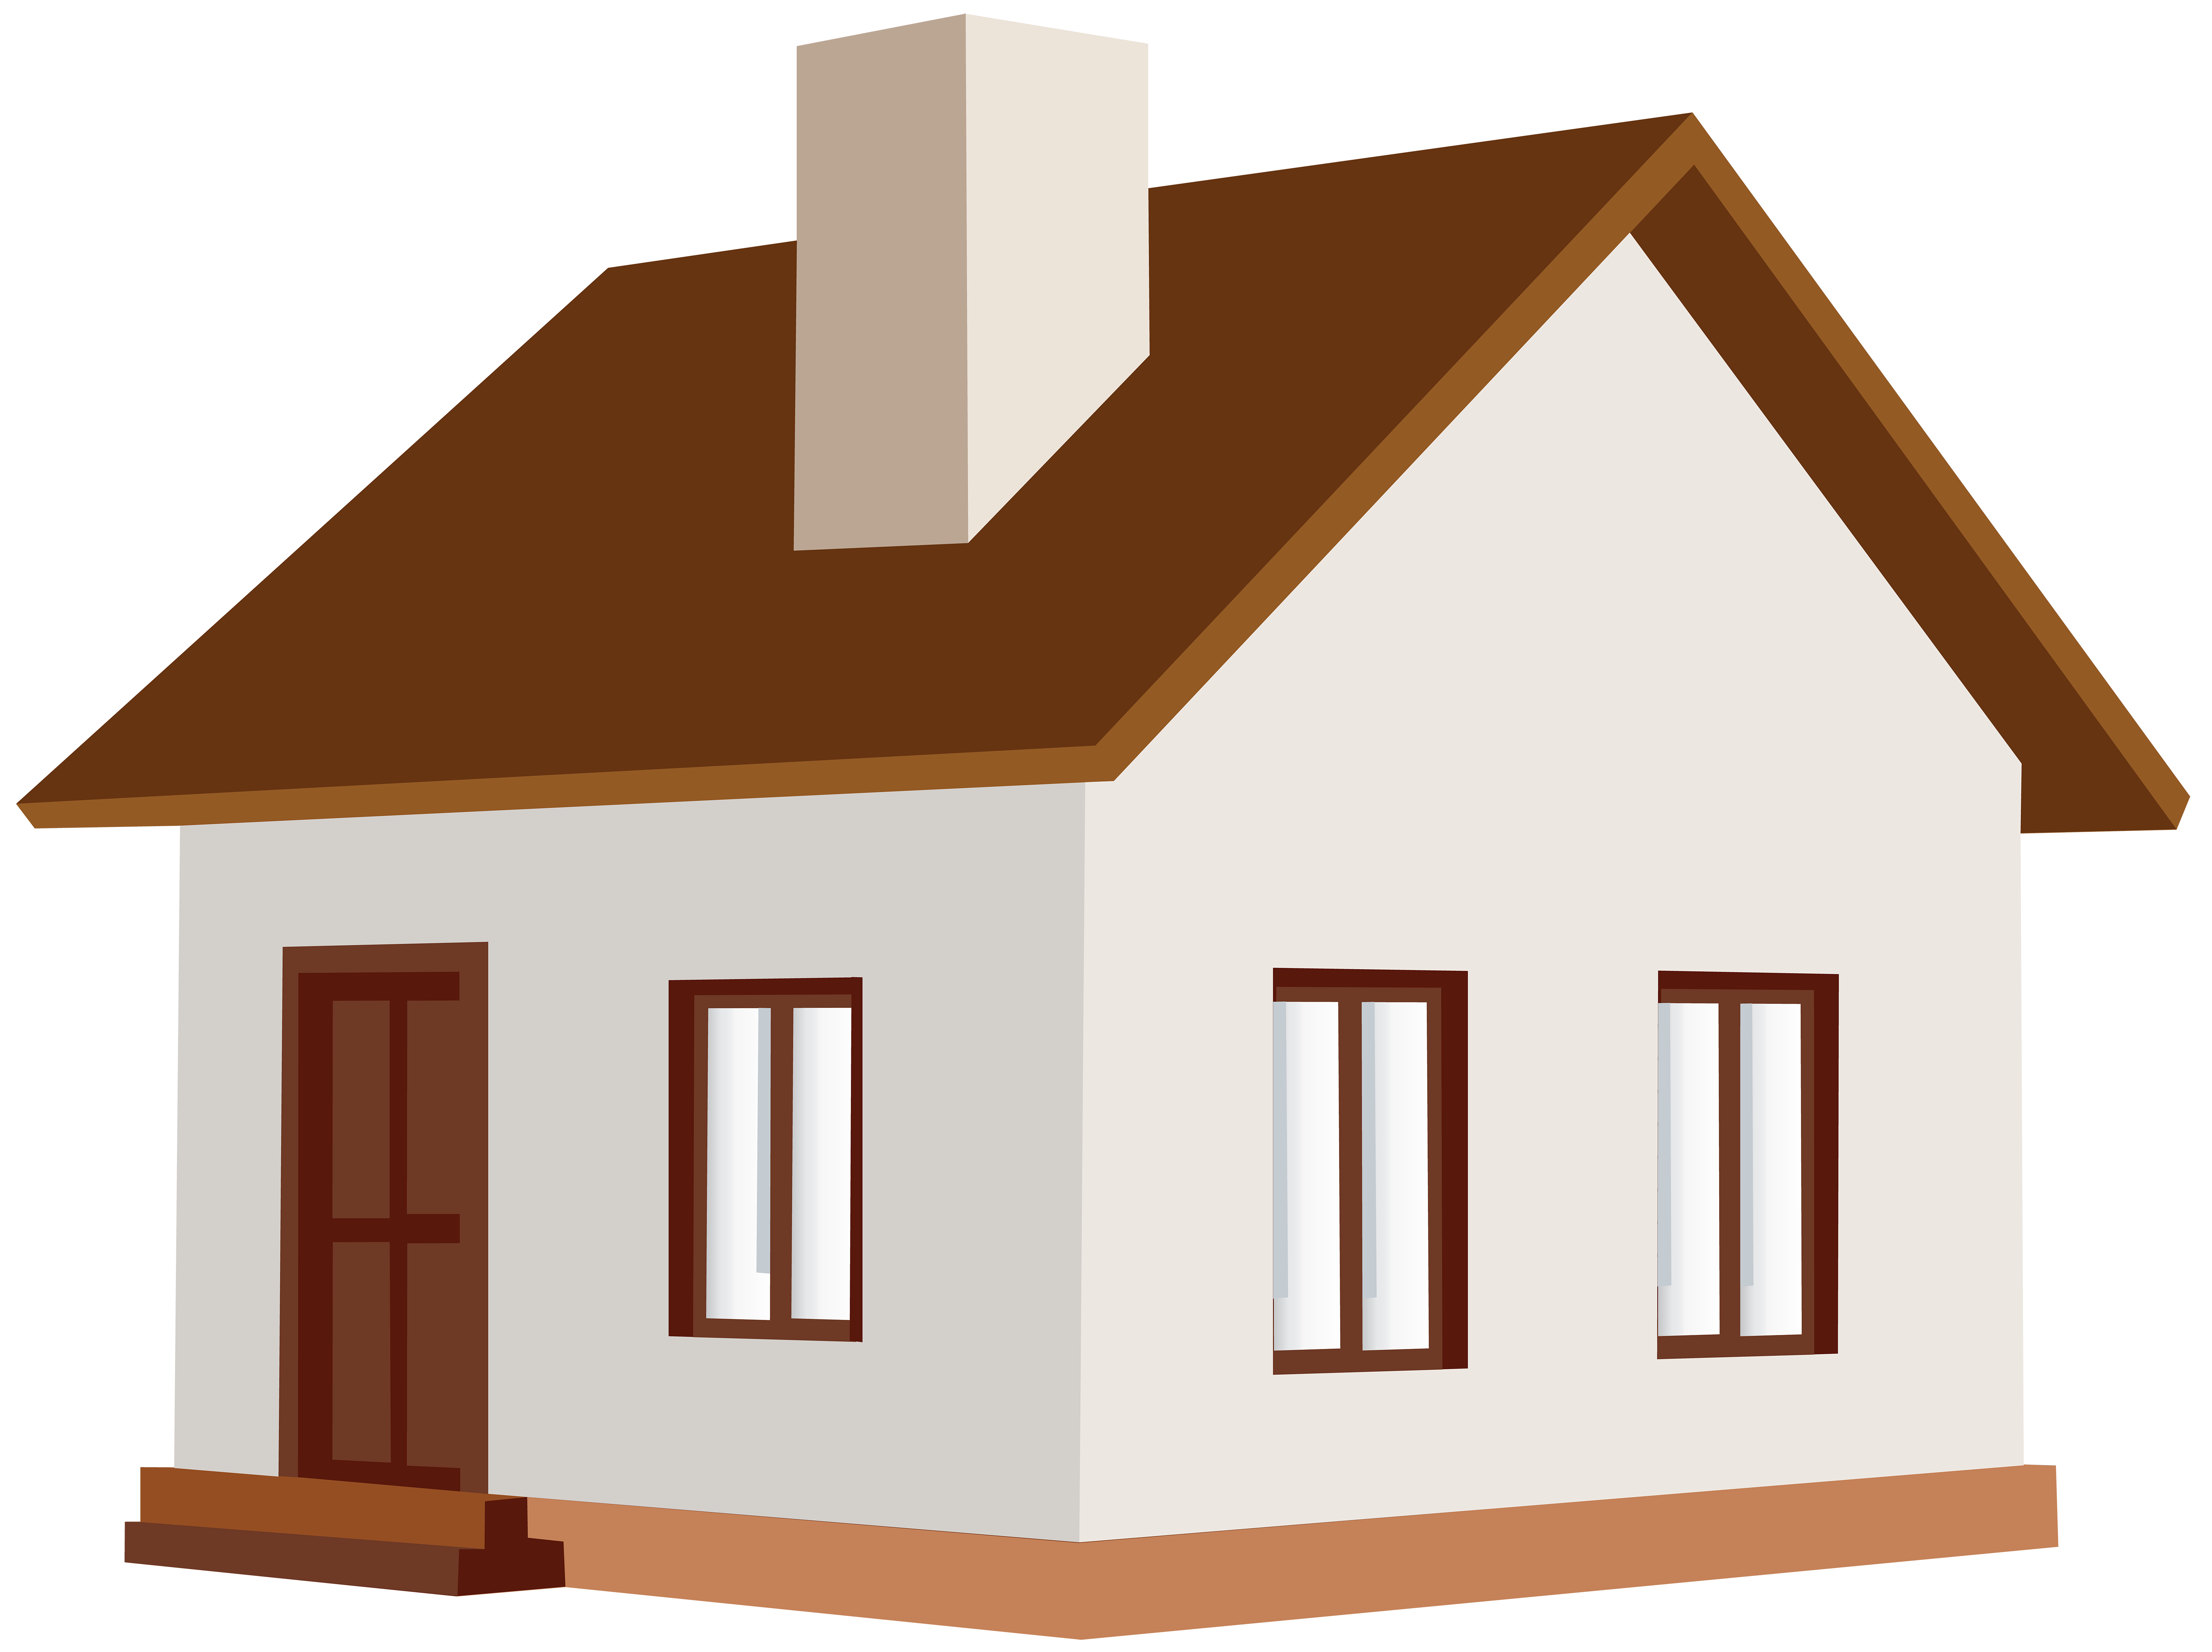 clipart free library House clipart. Png clip art best